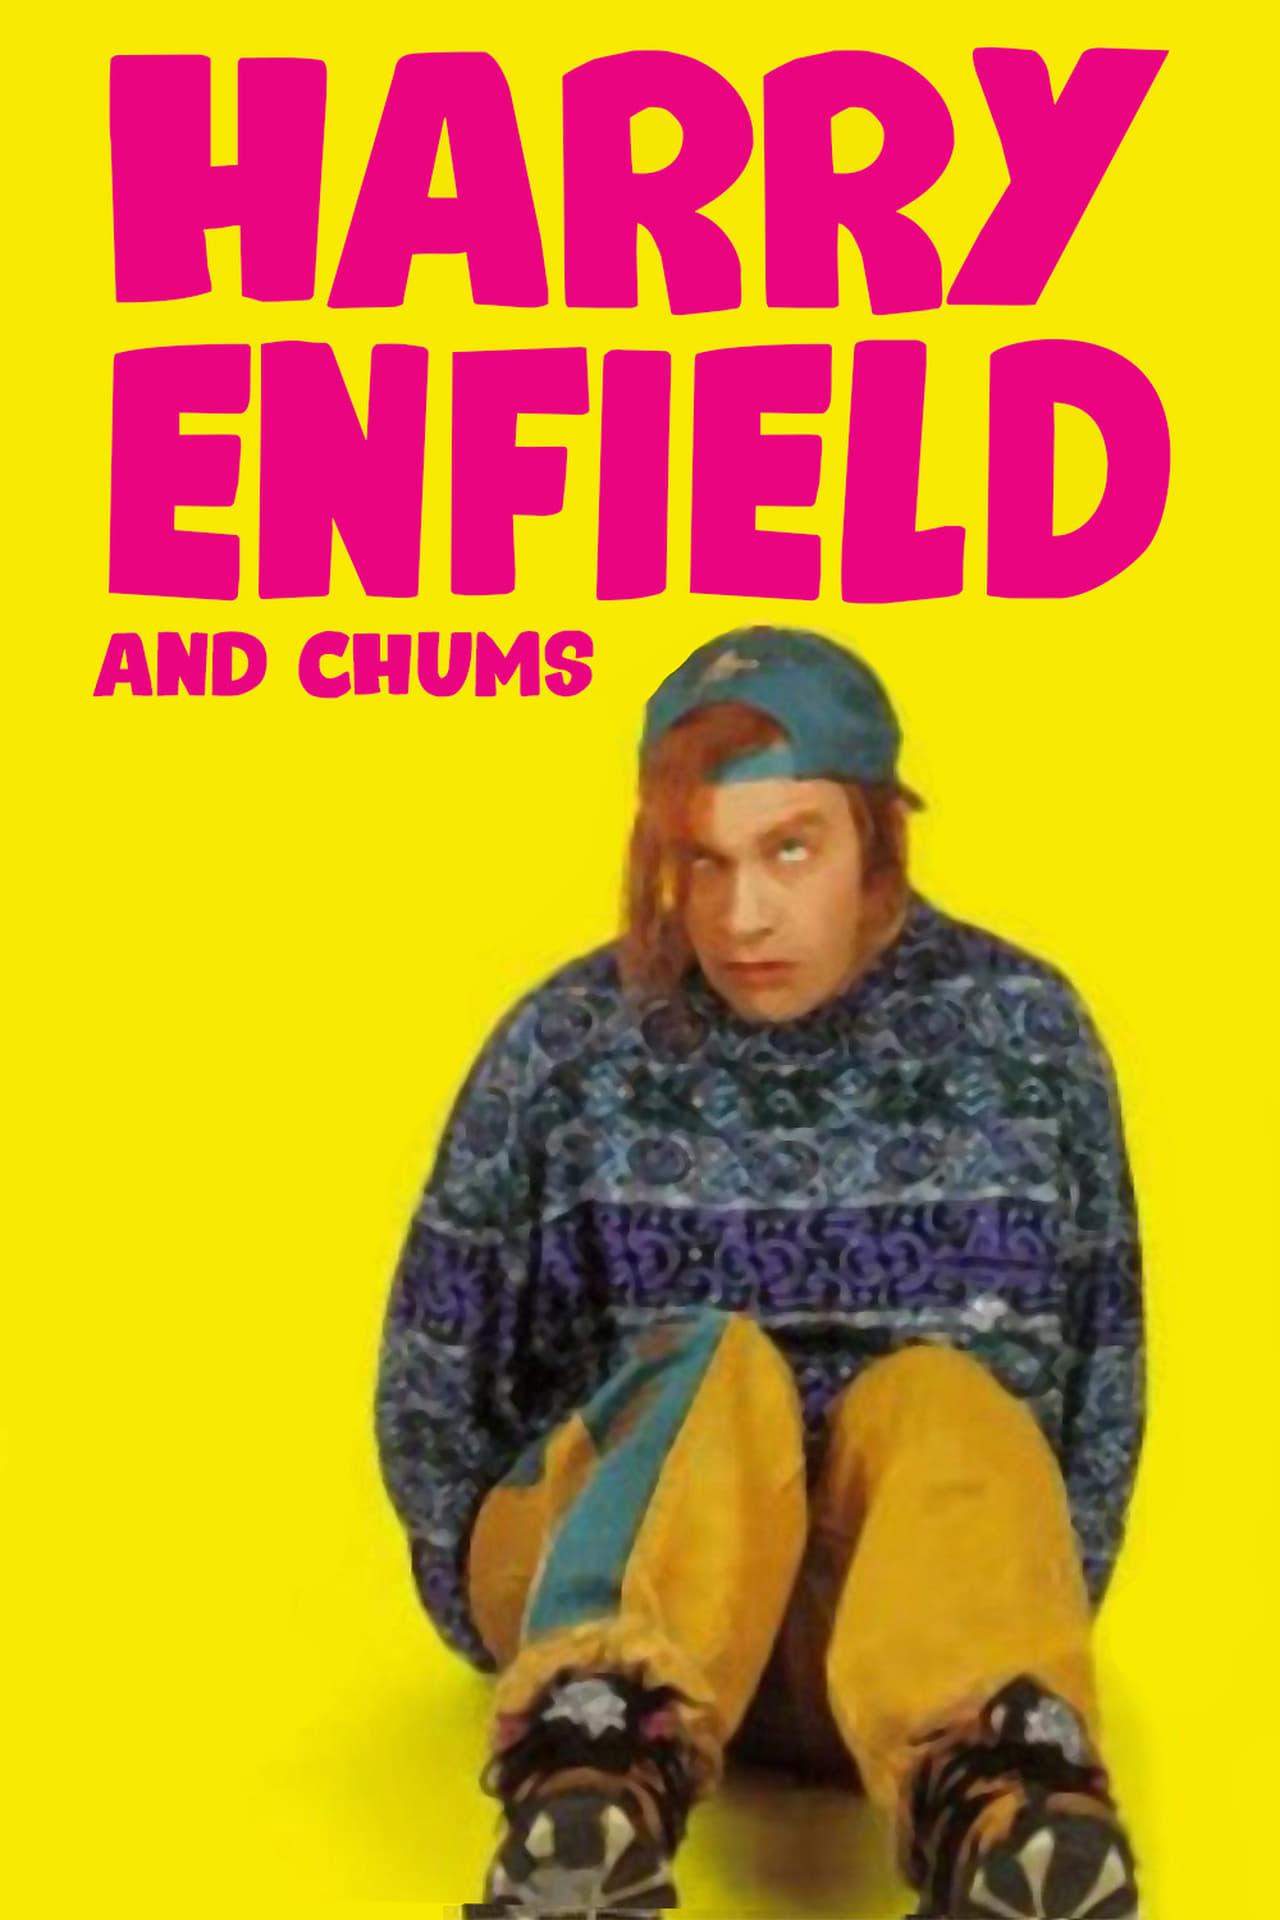 Harry Enfield and Chums